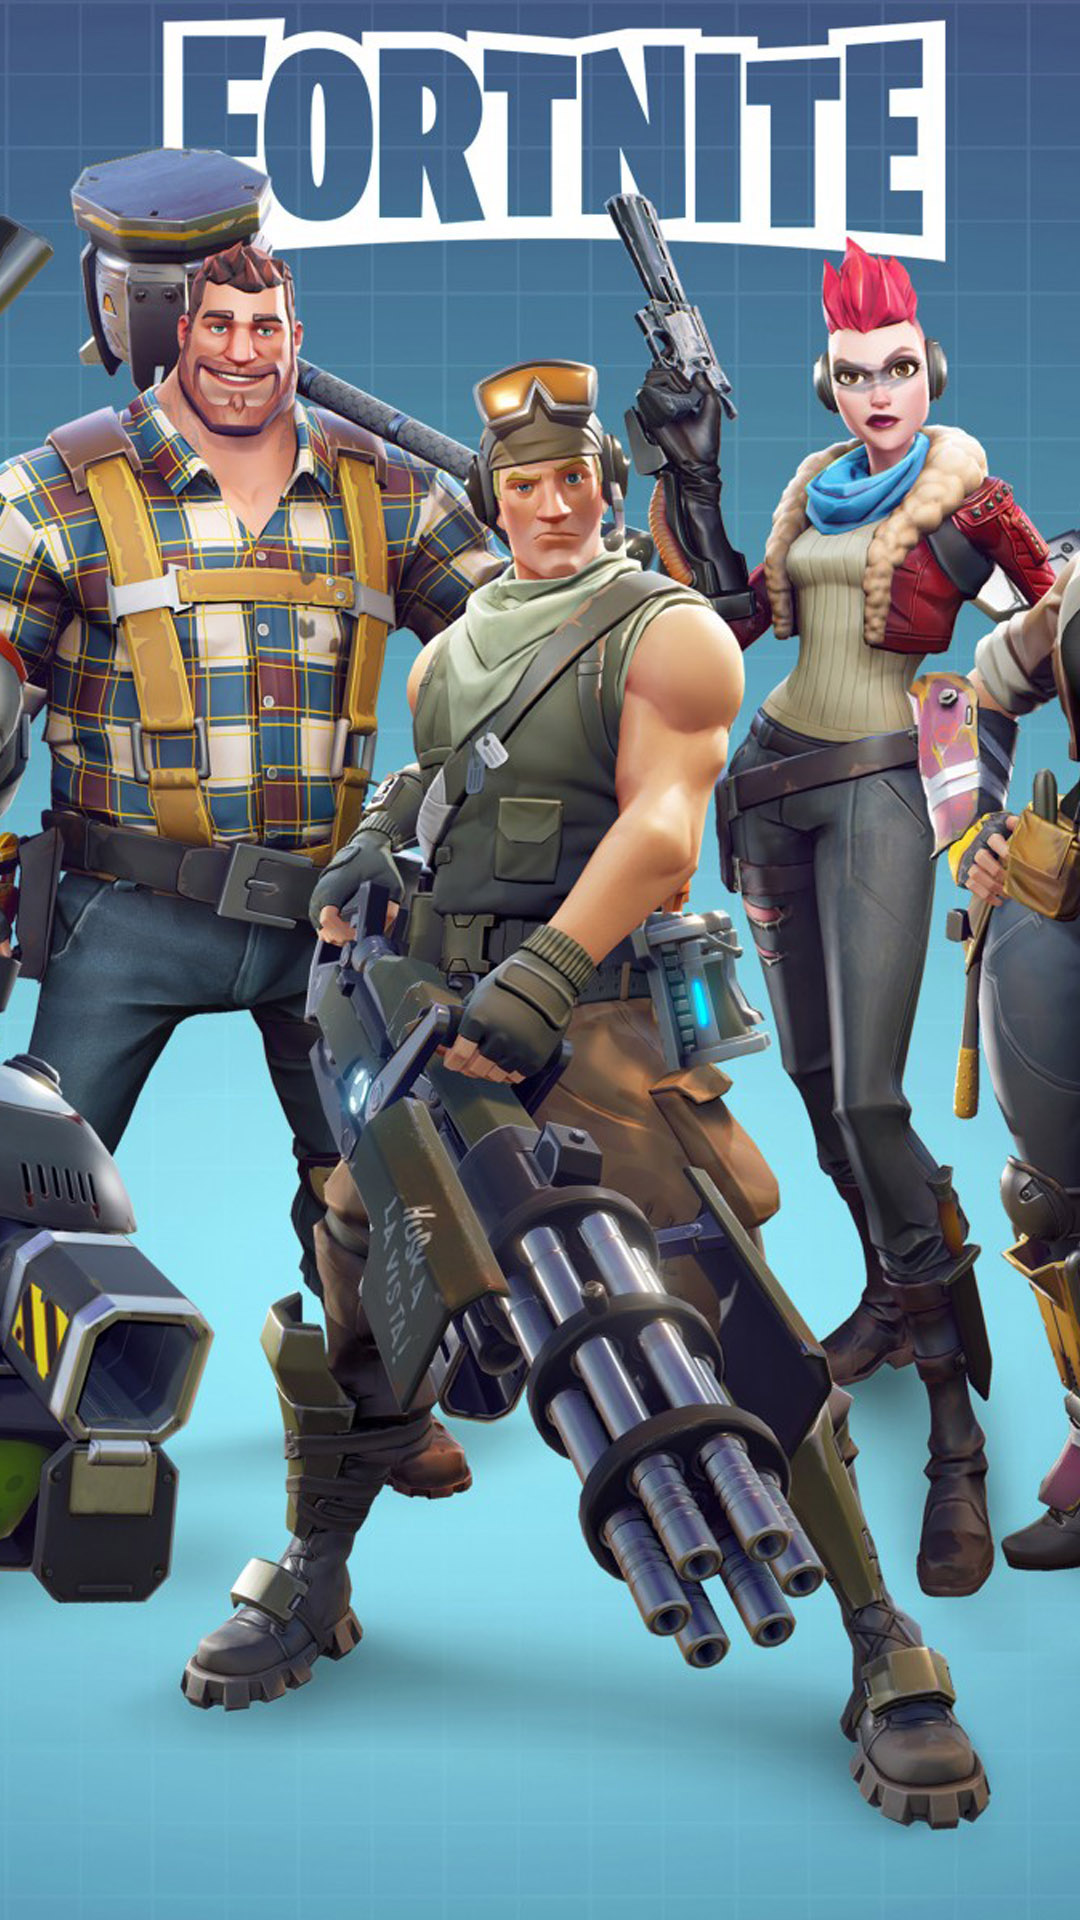 Fortnite team - Download 4k wallpapers for iPhone and Android